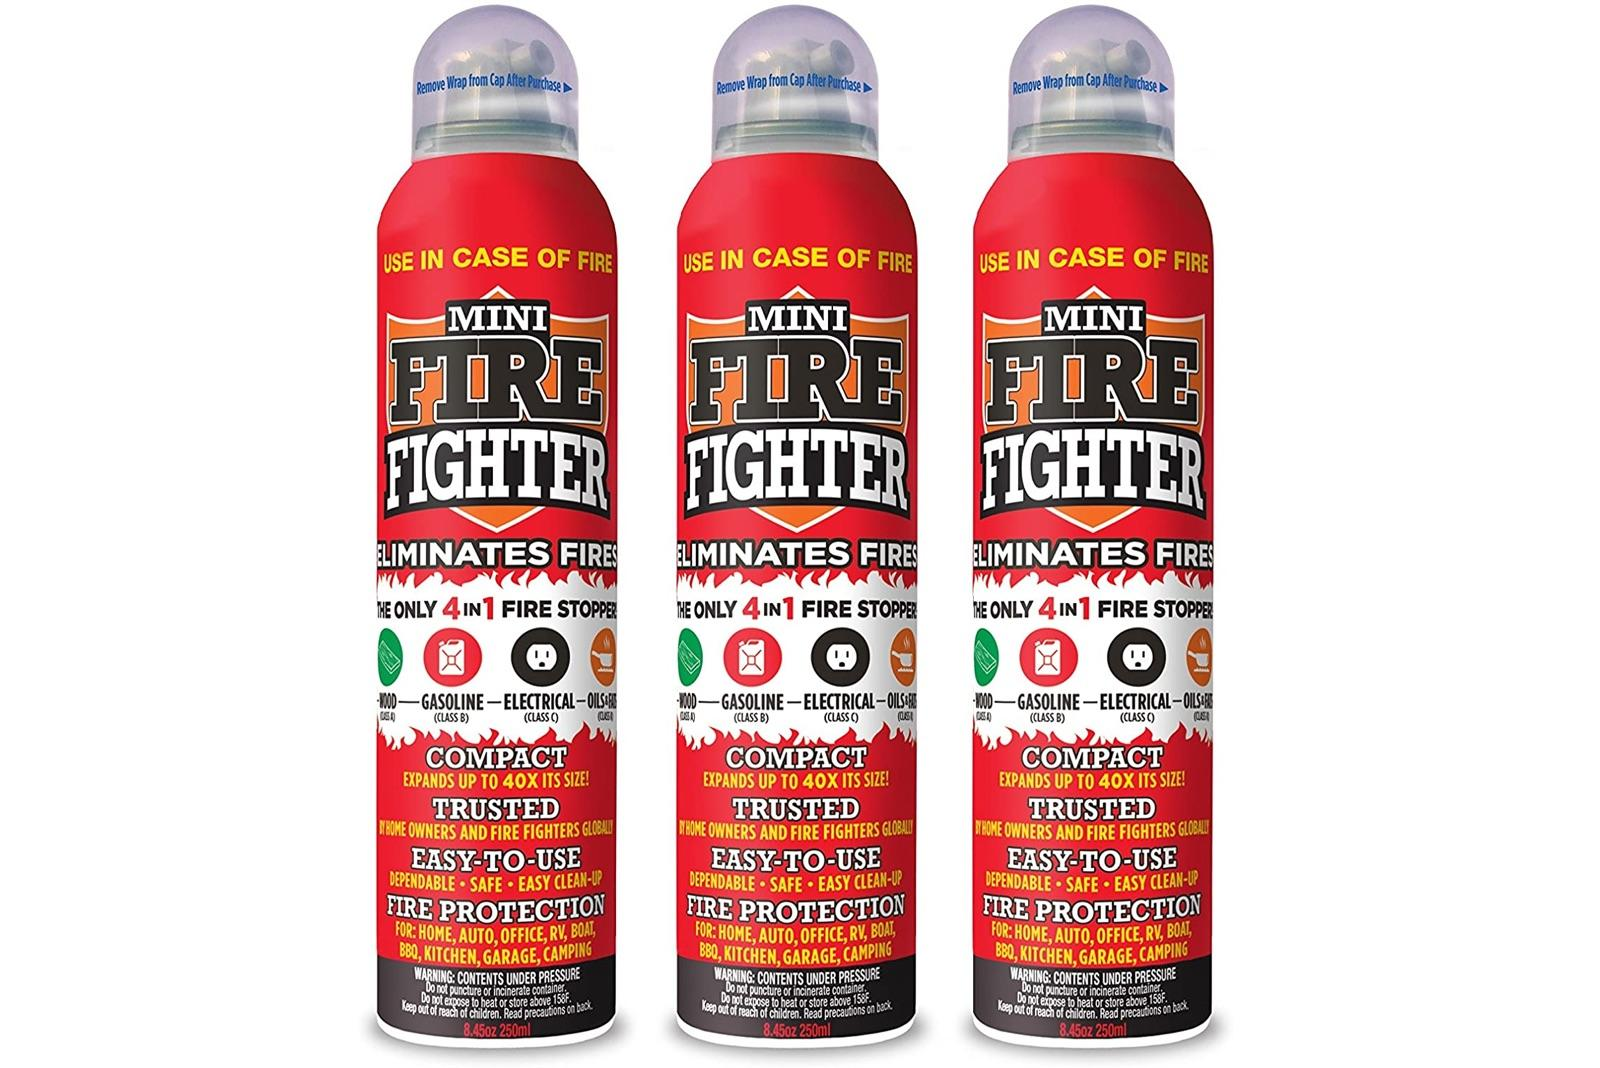 Mini Firefighter multi purpose 4-in-1 fire extinguisher (3-pack)